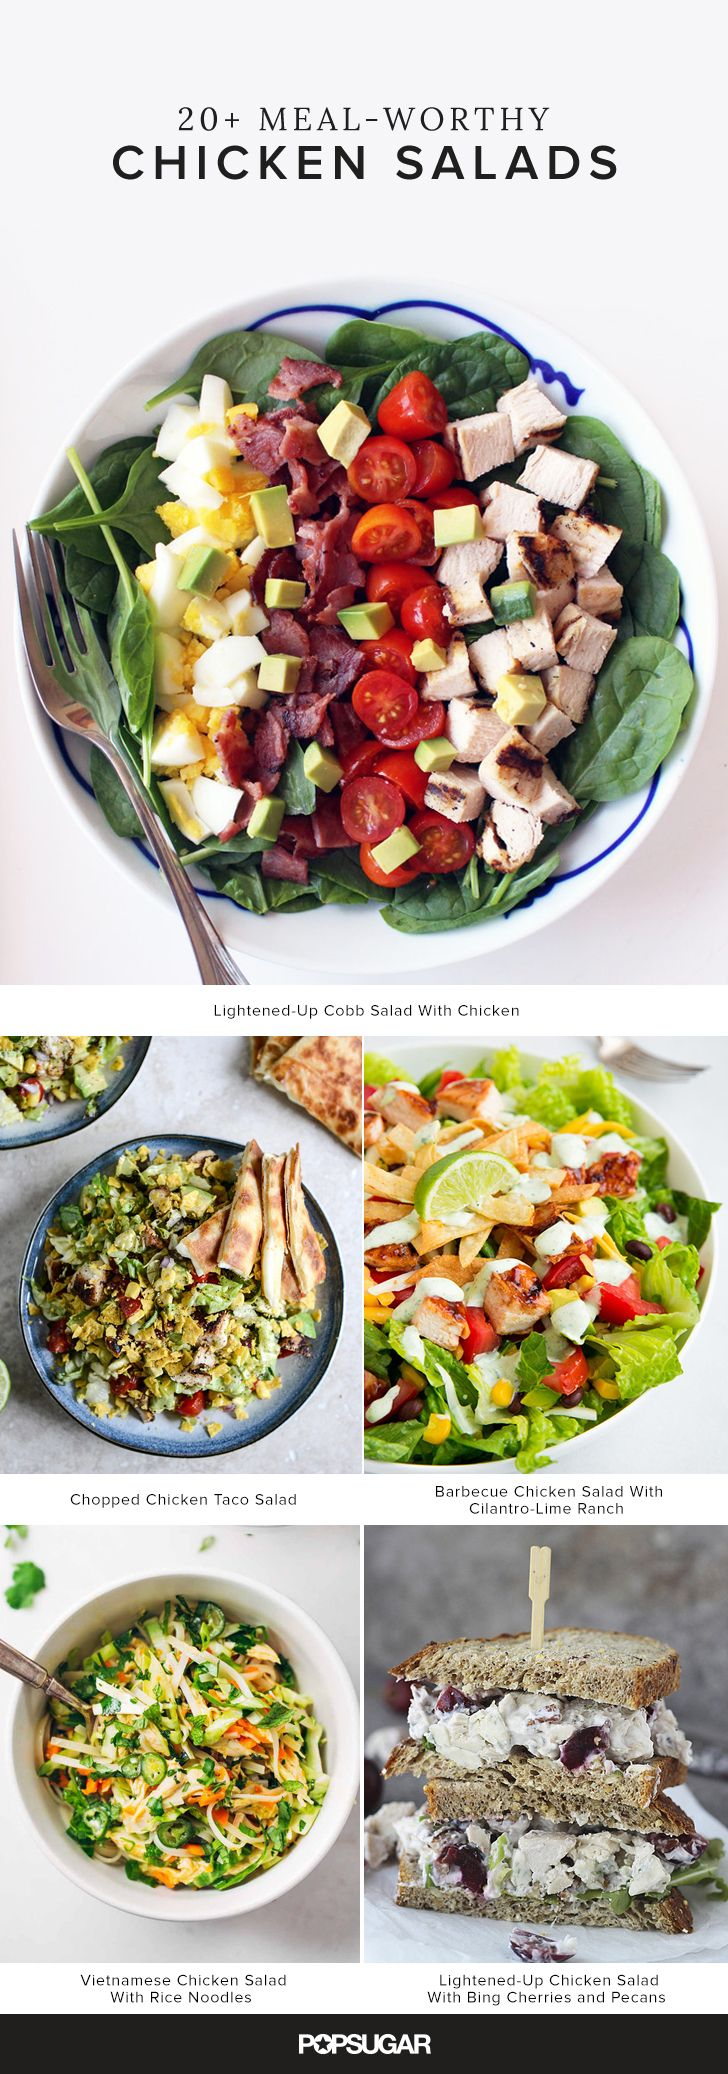 Here, we've rounded up 24 recipes that make chicken salad and exciting lunch option, ranging from Asian-inspired entrees to chicken salad (as in chicken bound with mayonnaise or Greek yogurt) to barbecue chicken Cobb salad.